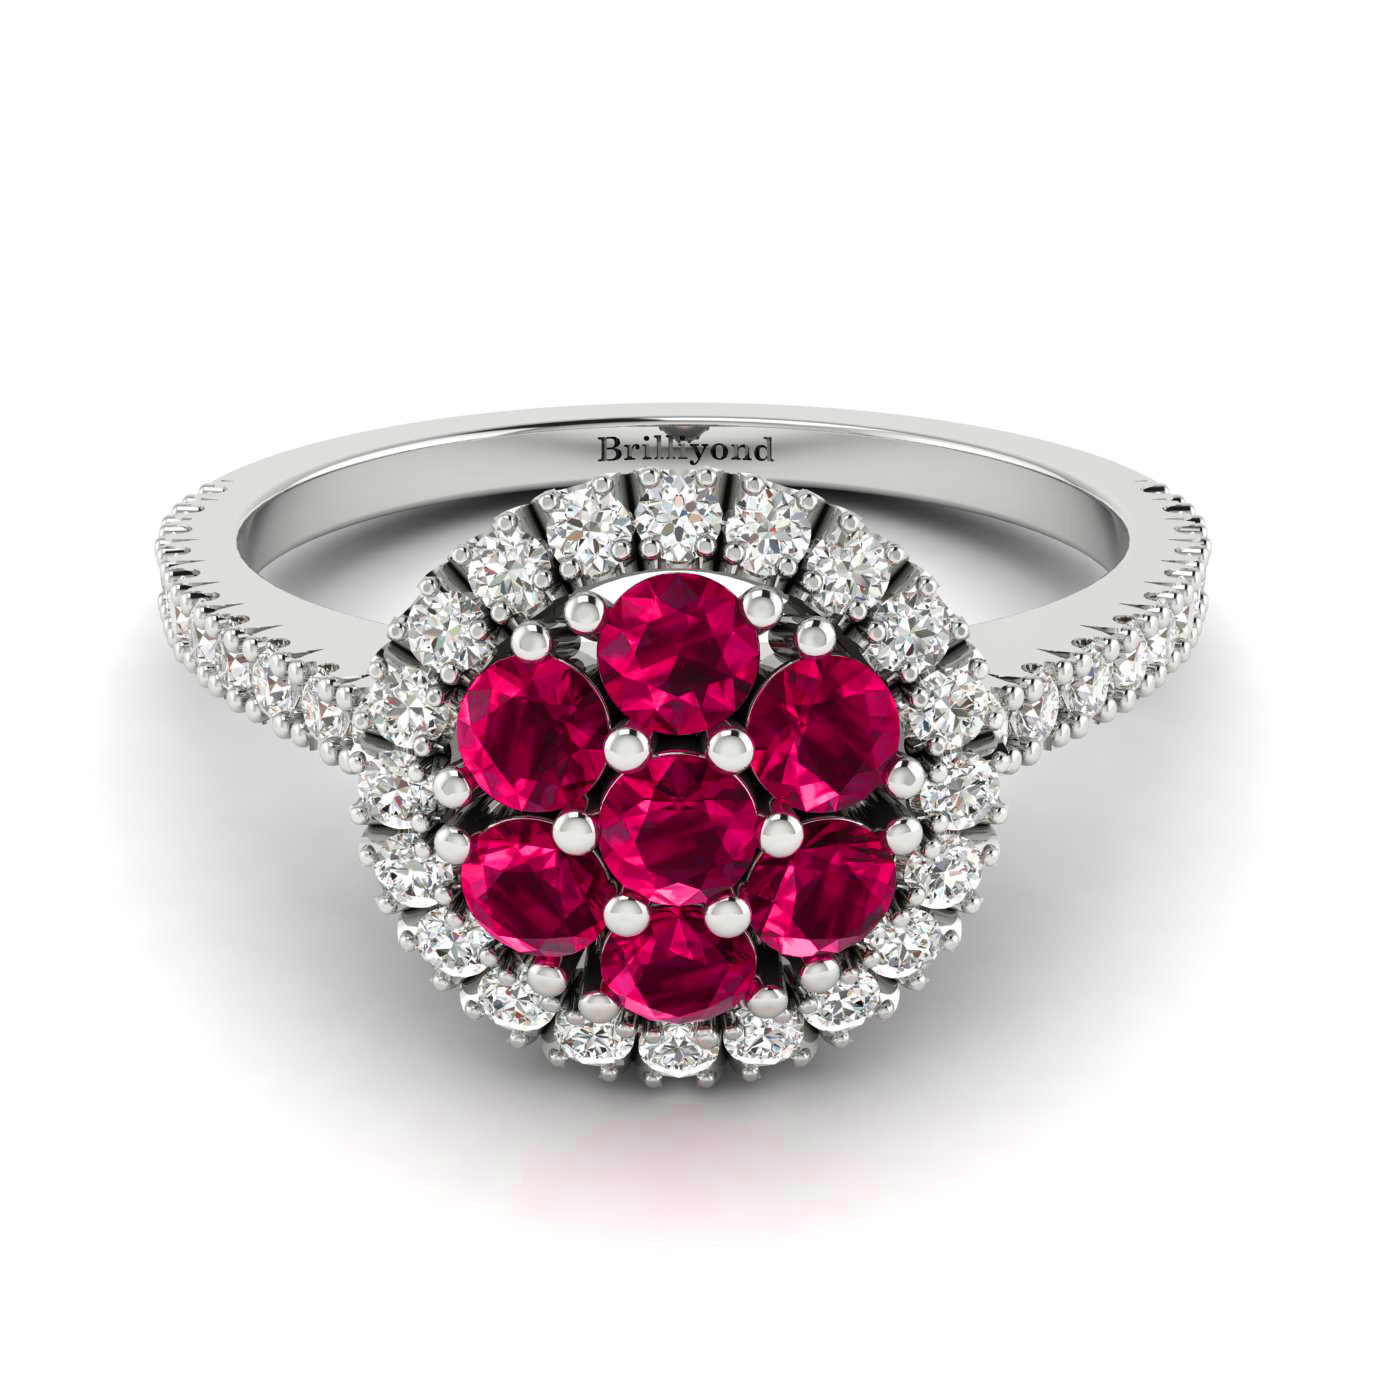 7 x 2.5mm Ruby with 40 Diamond Accents on 18k White Gold Band